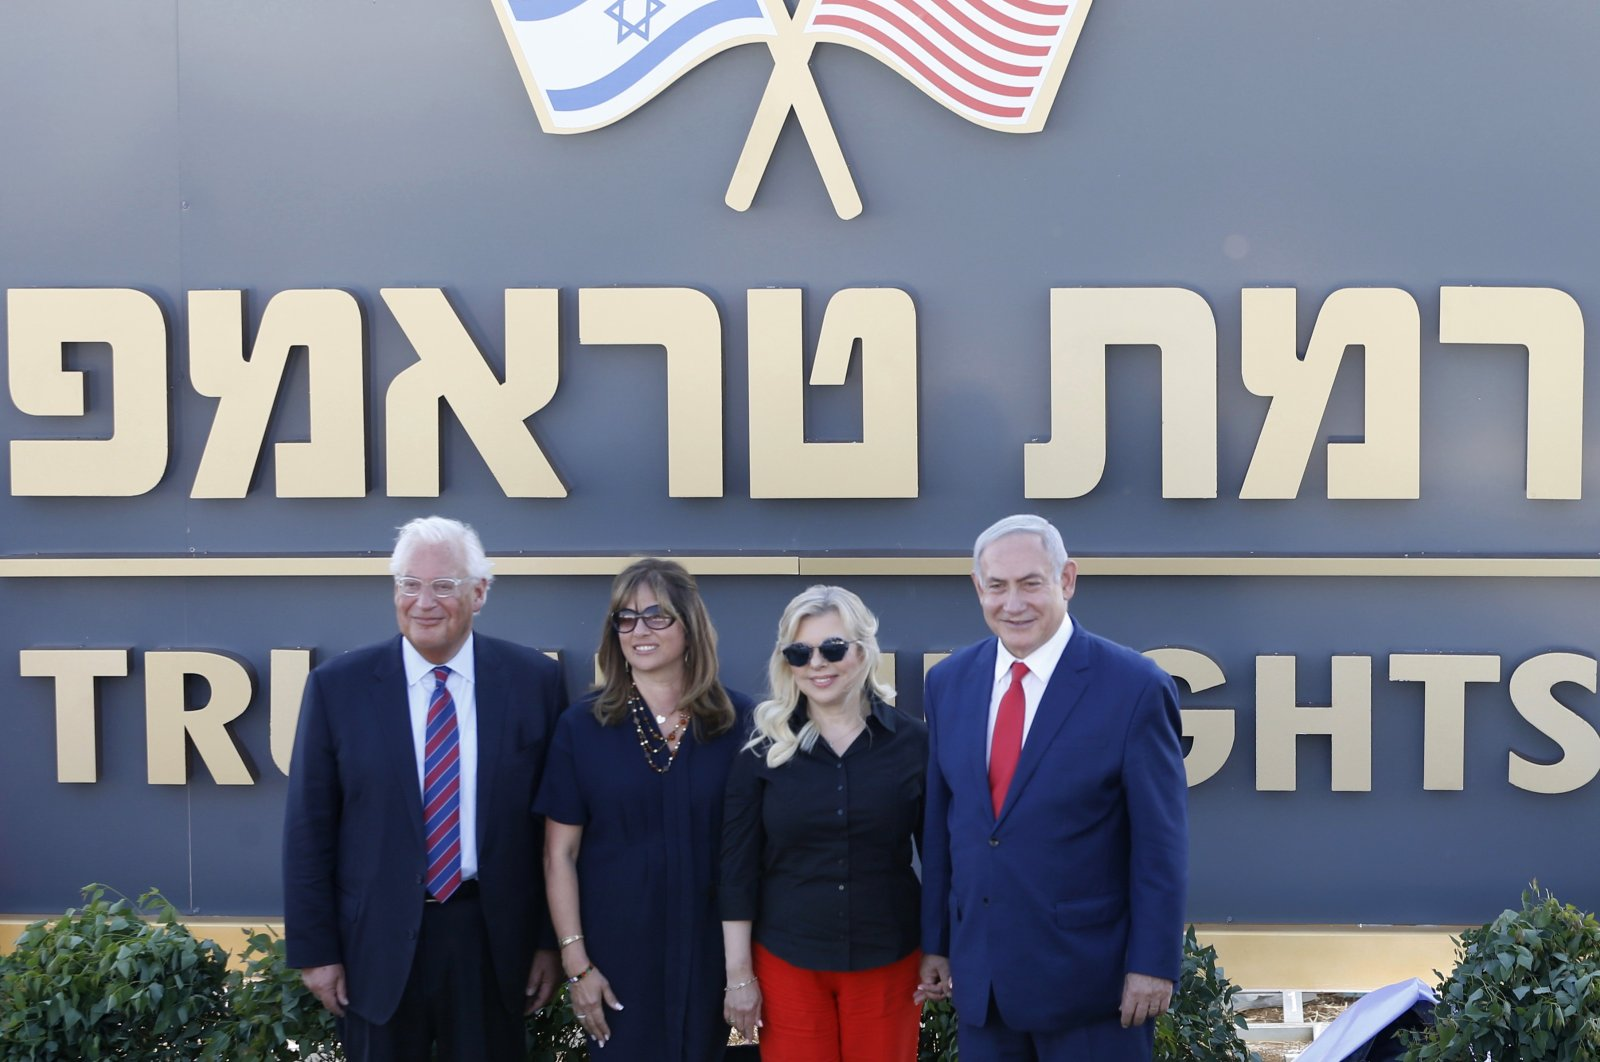 U.St. Ambassador to Israel David Friedman (L) and his wife Tammy Friedman (2nd L) pose with Israeli Prime Minister Benjamin Netanyahu's wife, Sara Netanyahu (2nd R), and Israeli Prime Minister Benjamin Netanyahu during the inauguration of a new settlement named after U.S. President Donald Trump in the Golan Heights, June 16, 2019. (AP Photo)